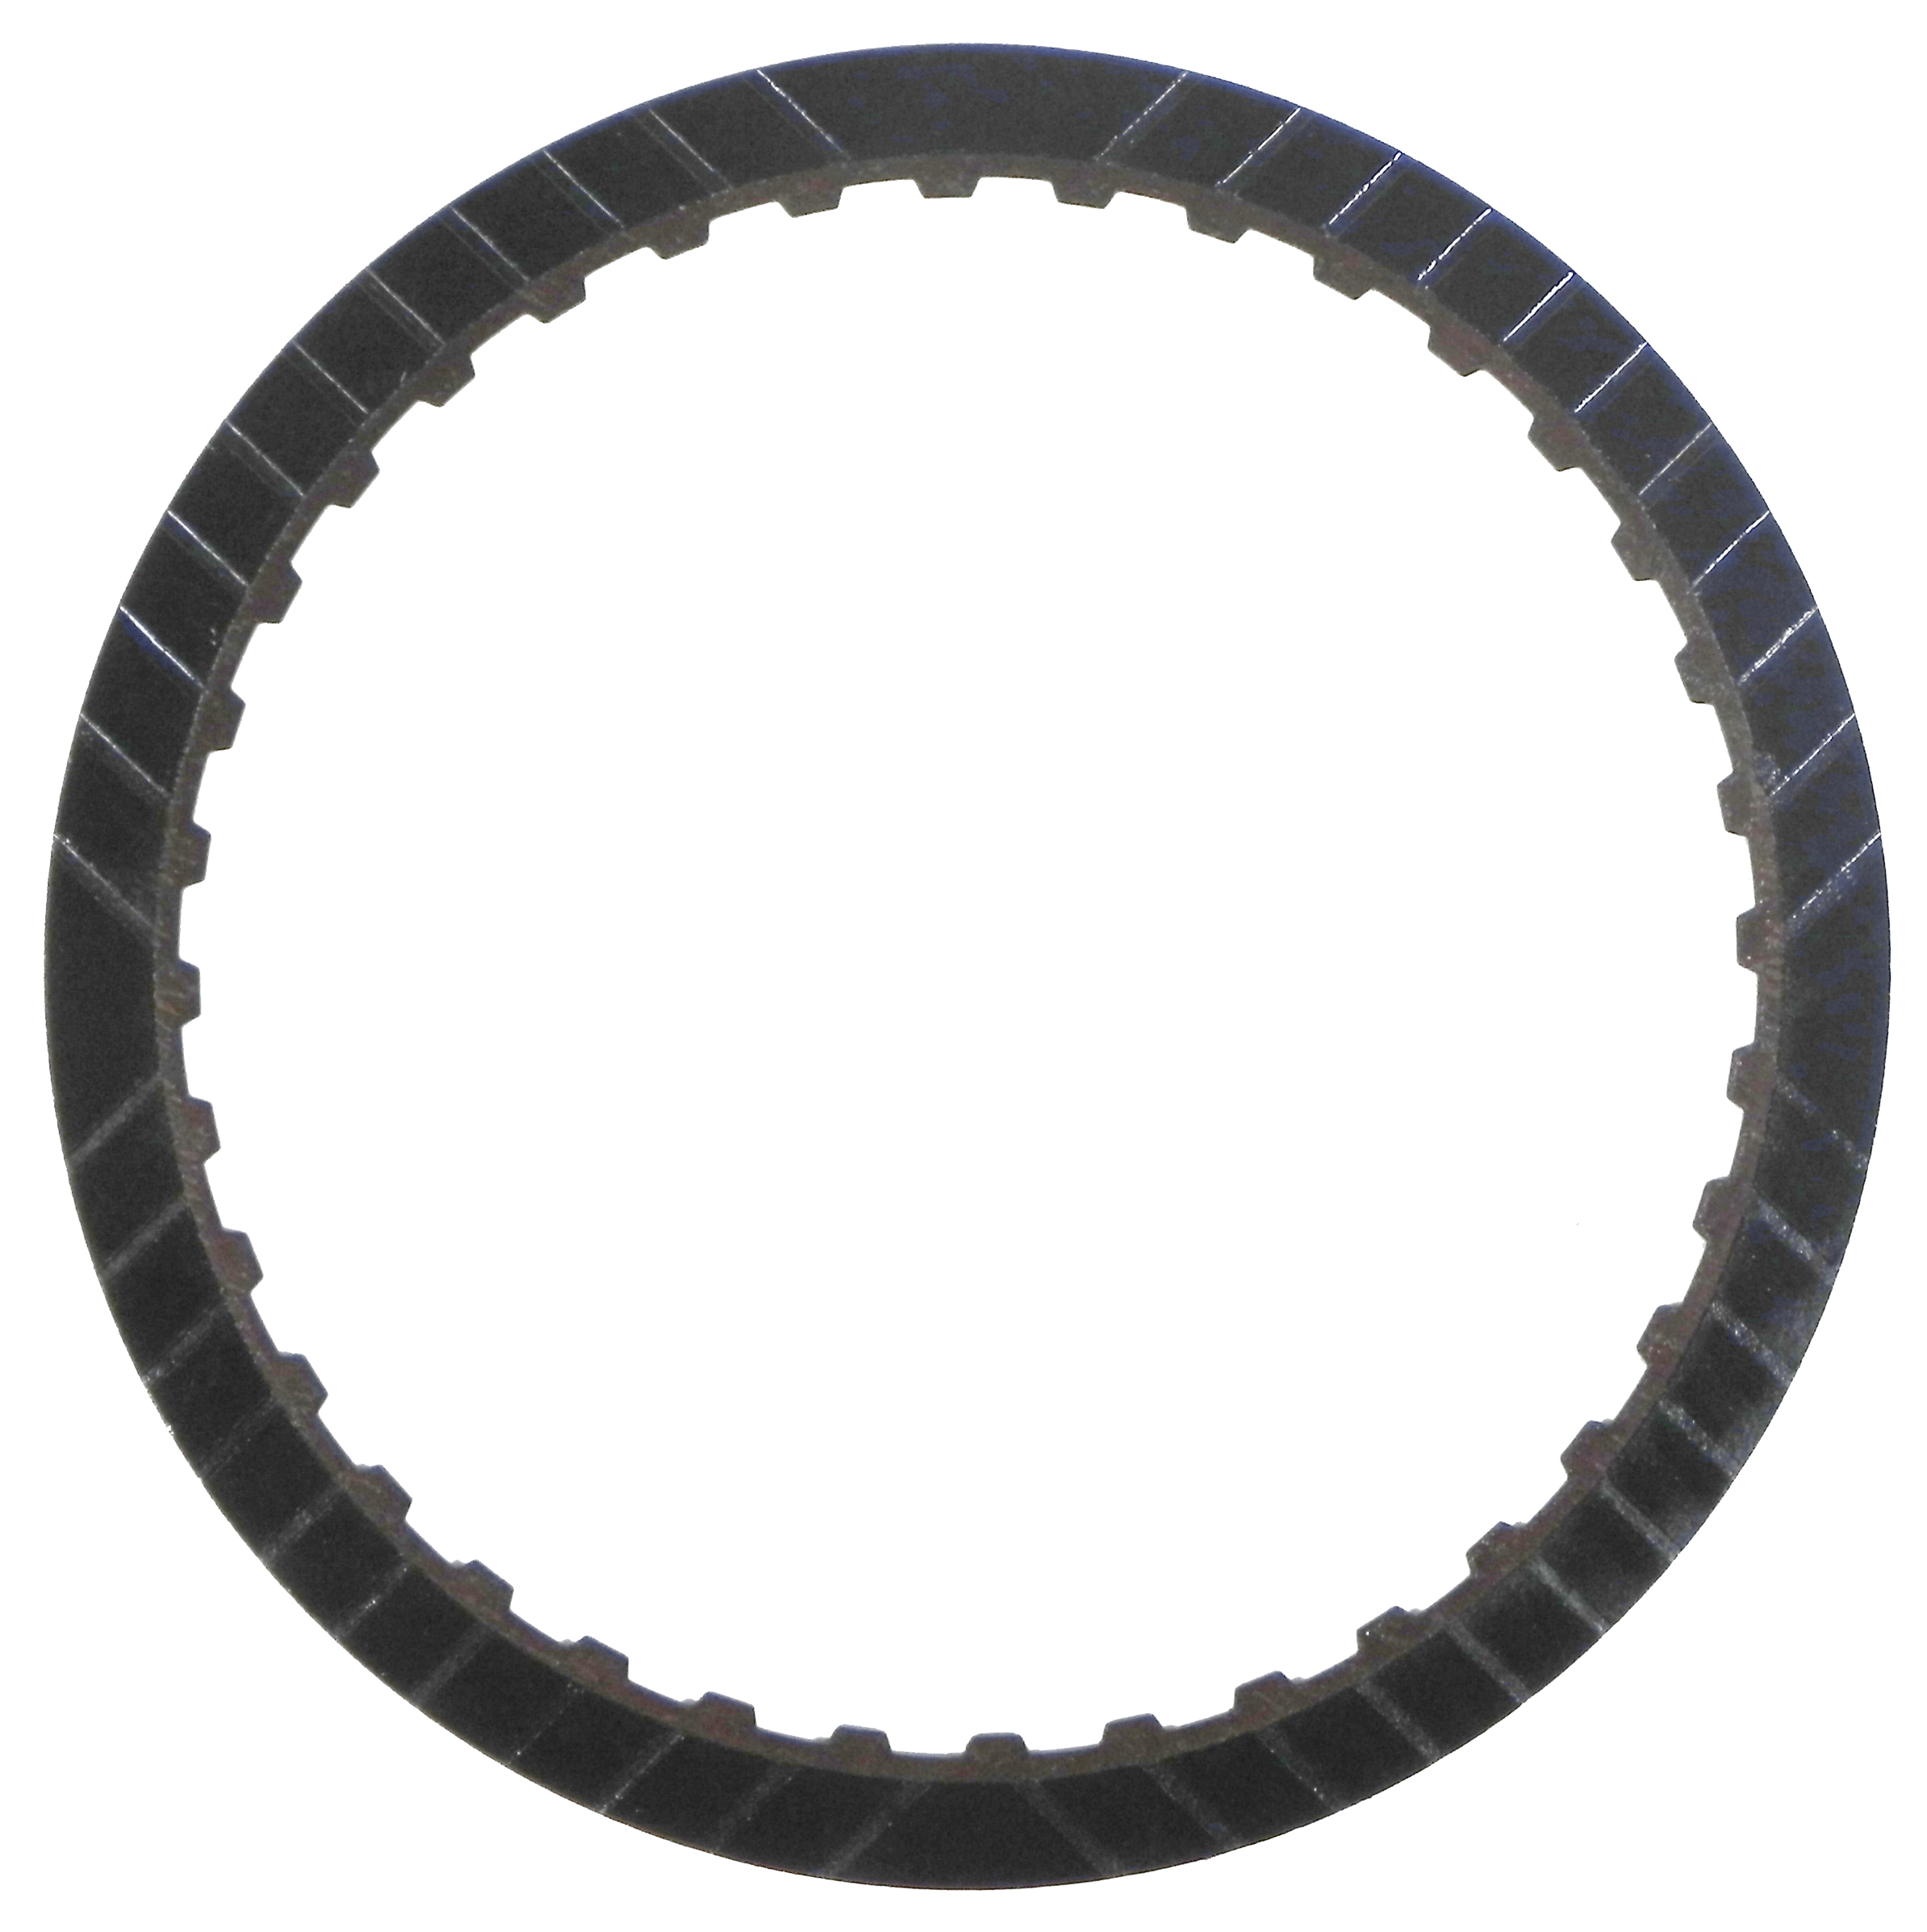 6L80, 6L90 GEN 2, Blue Plate Special Friction Clutch Plate